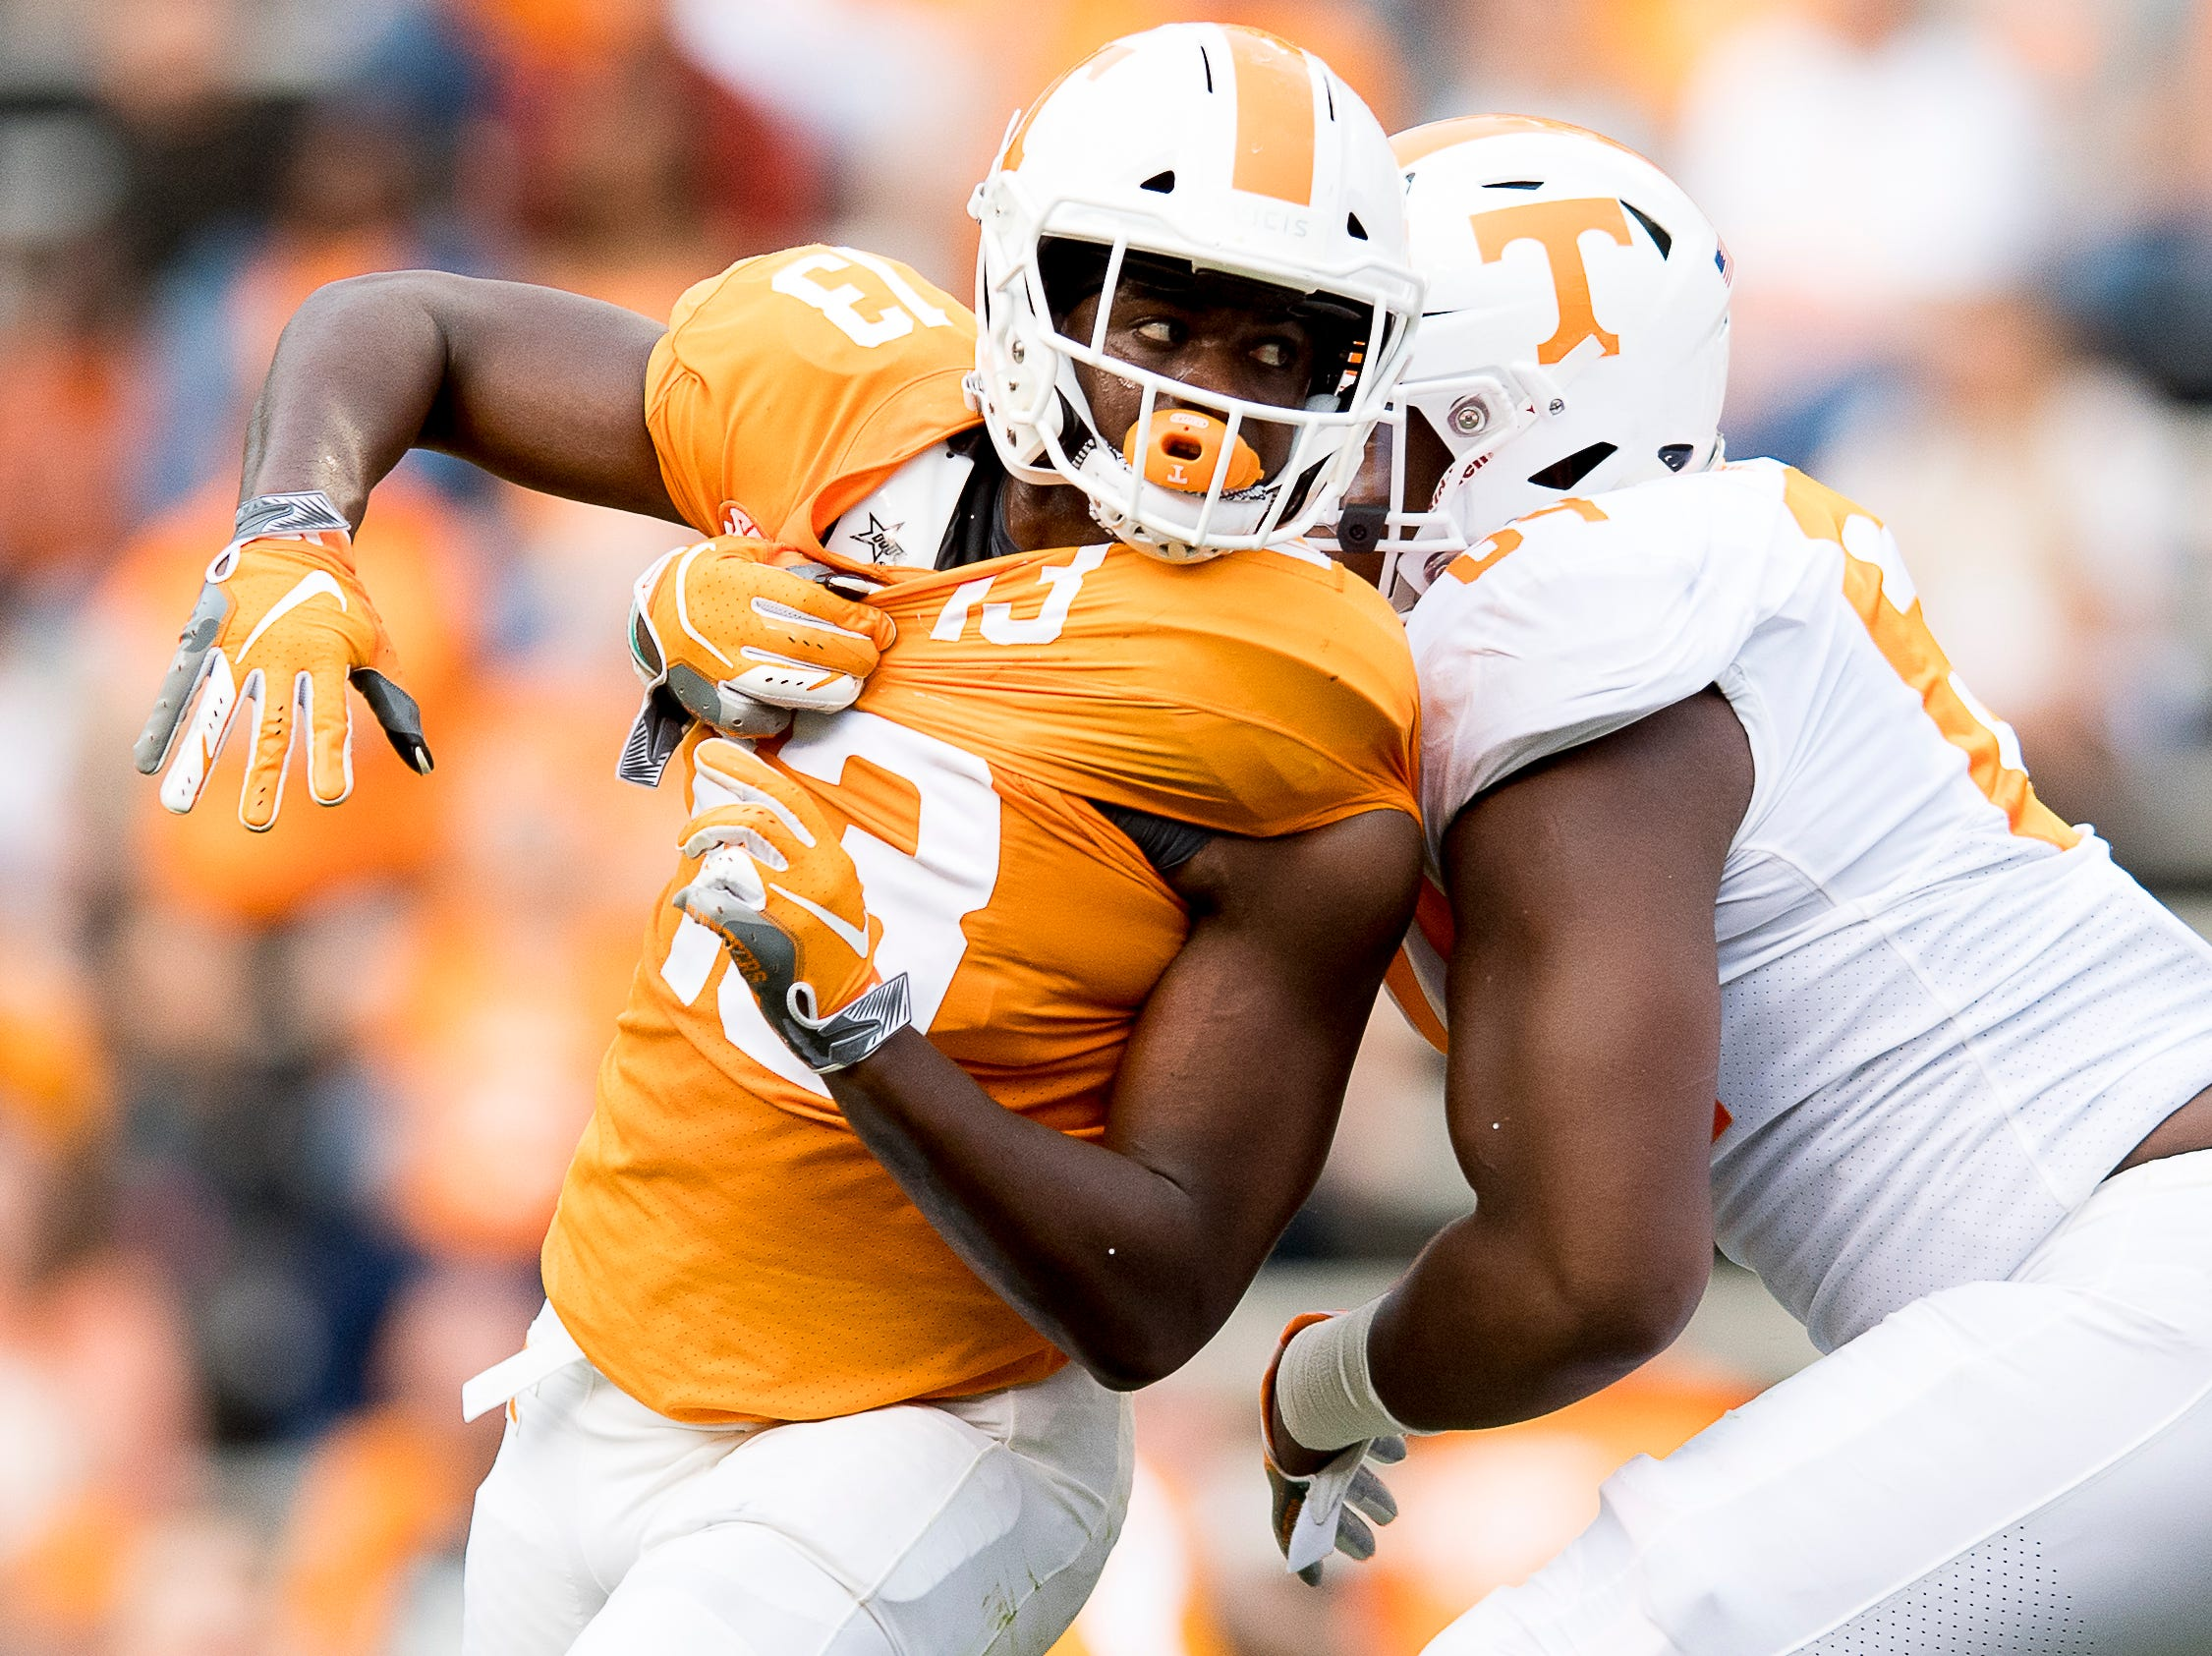 Tennessee linebacker Deandre Johnson tries to get around Tennessee offensive lineman Wanya Morris (64) during the Tennessee Spring Game at Neyland Stadium in Knoxville, Tennessee on Saturday, April 13, 2019.